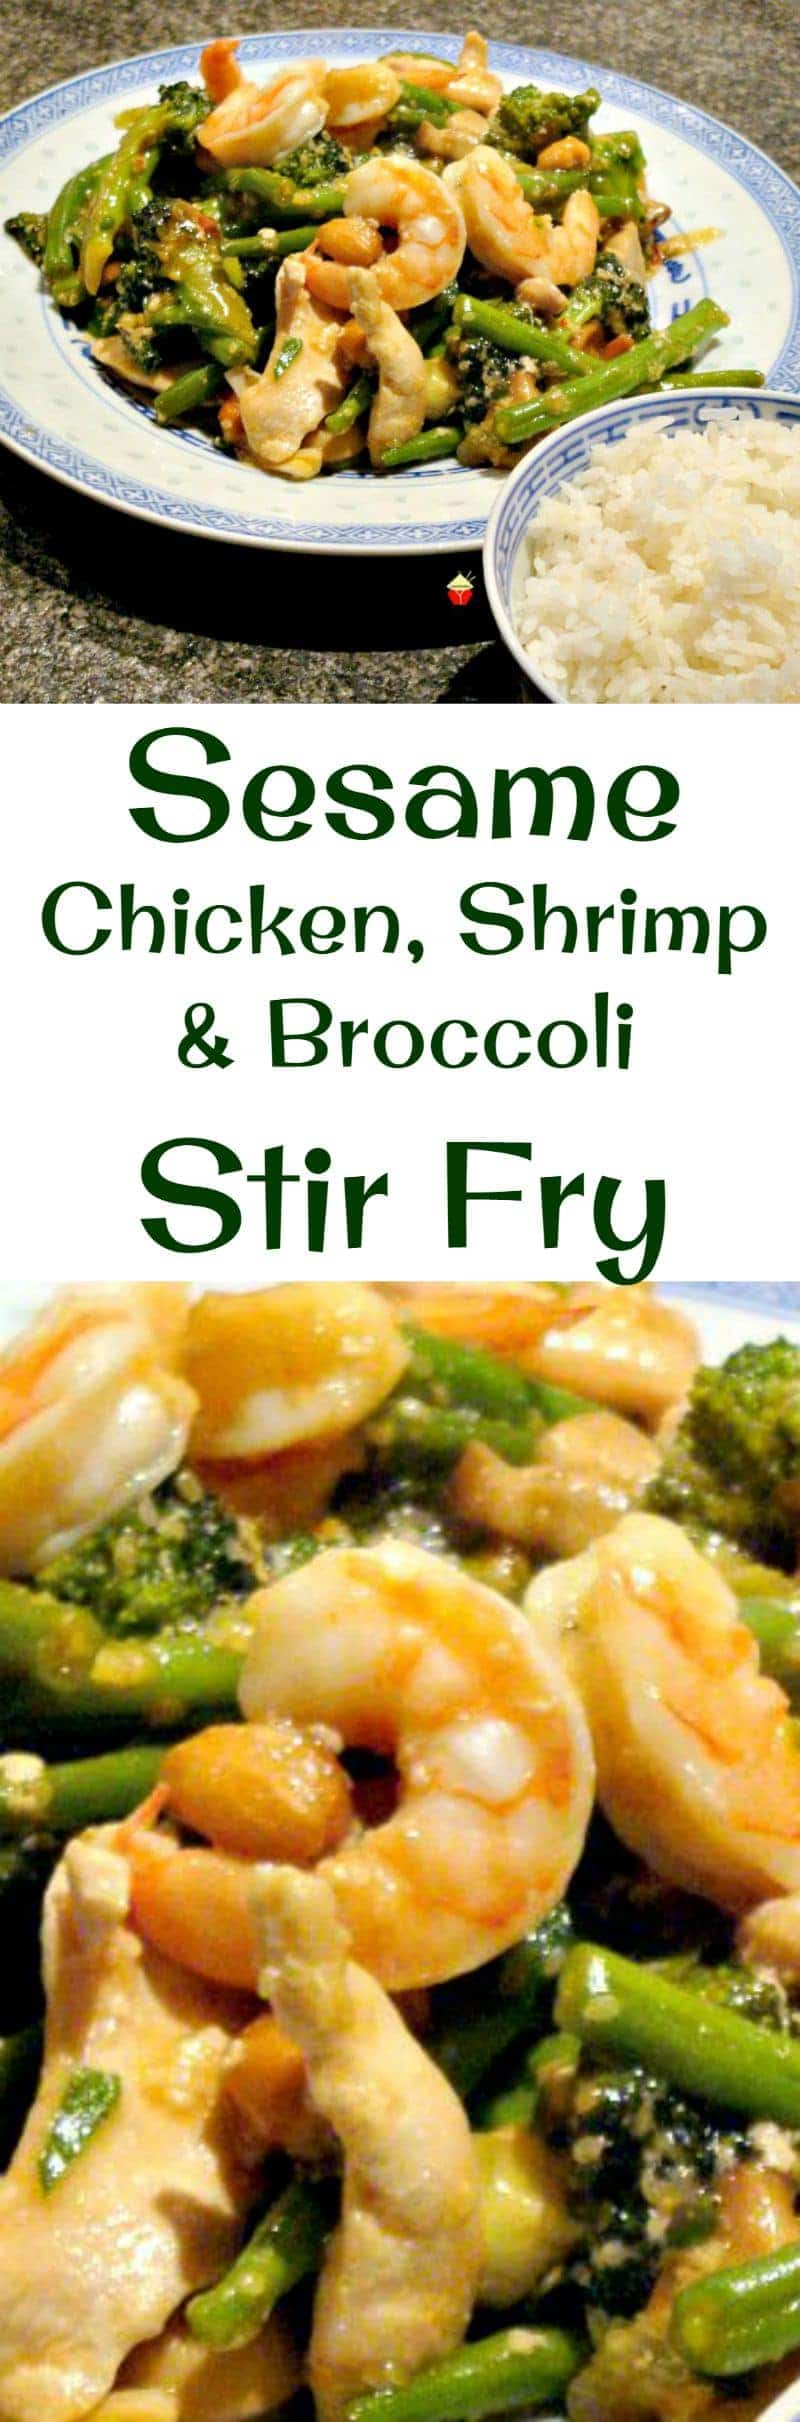 Sesame Chicken, Shrimp and Broccoli Stir Fry is a really quick and ...